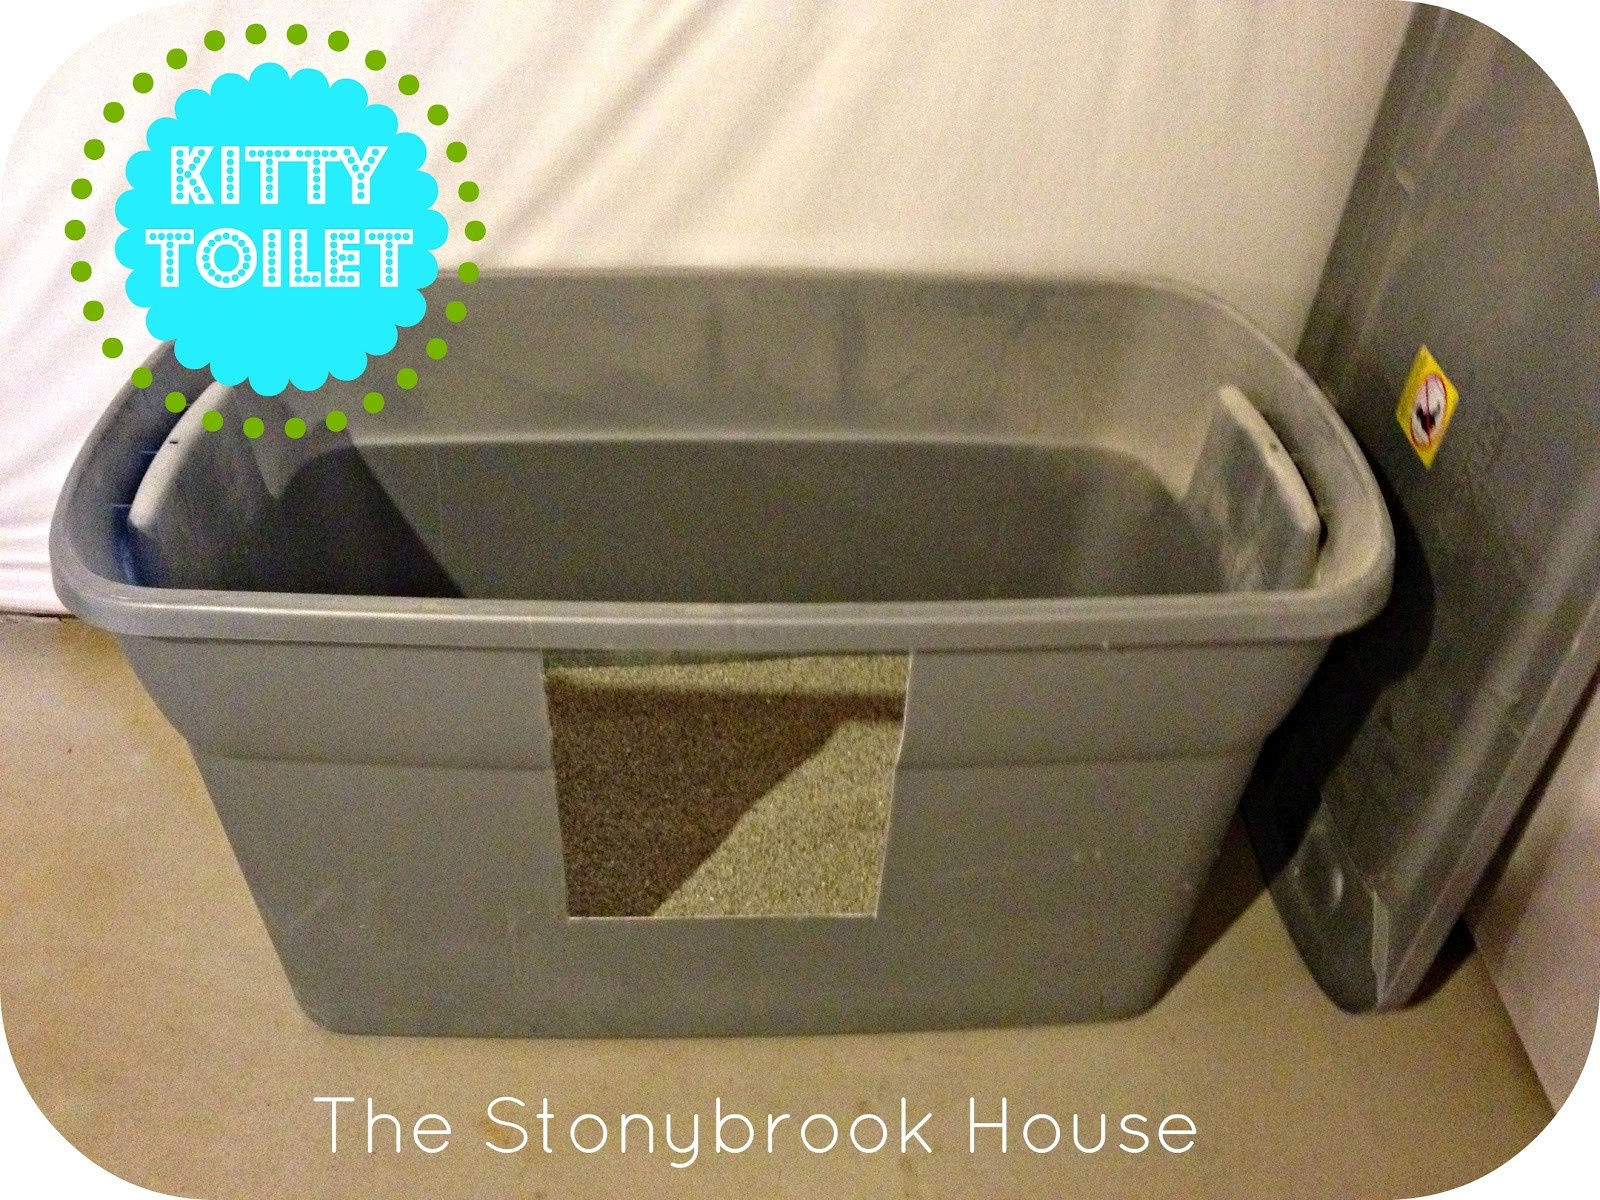 Best ideas about DIY Litter Box . Save or Pin Kitty Toilets D DIY Litter Box The Stonybrook House Now.